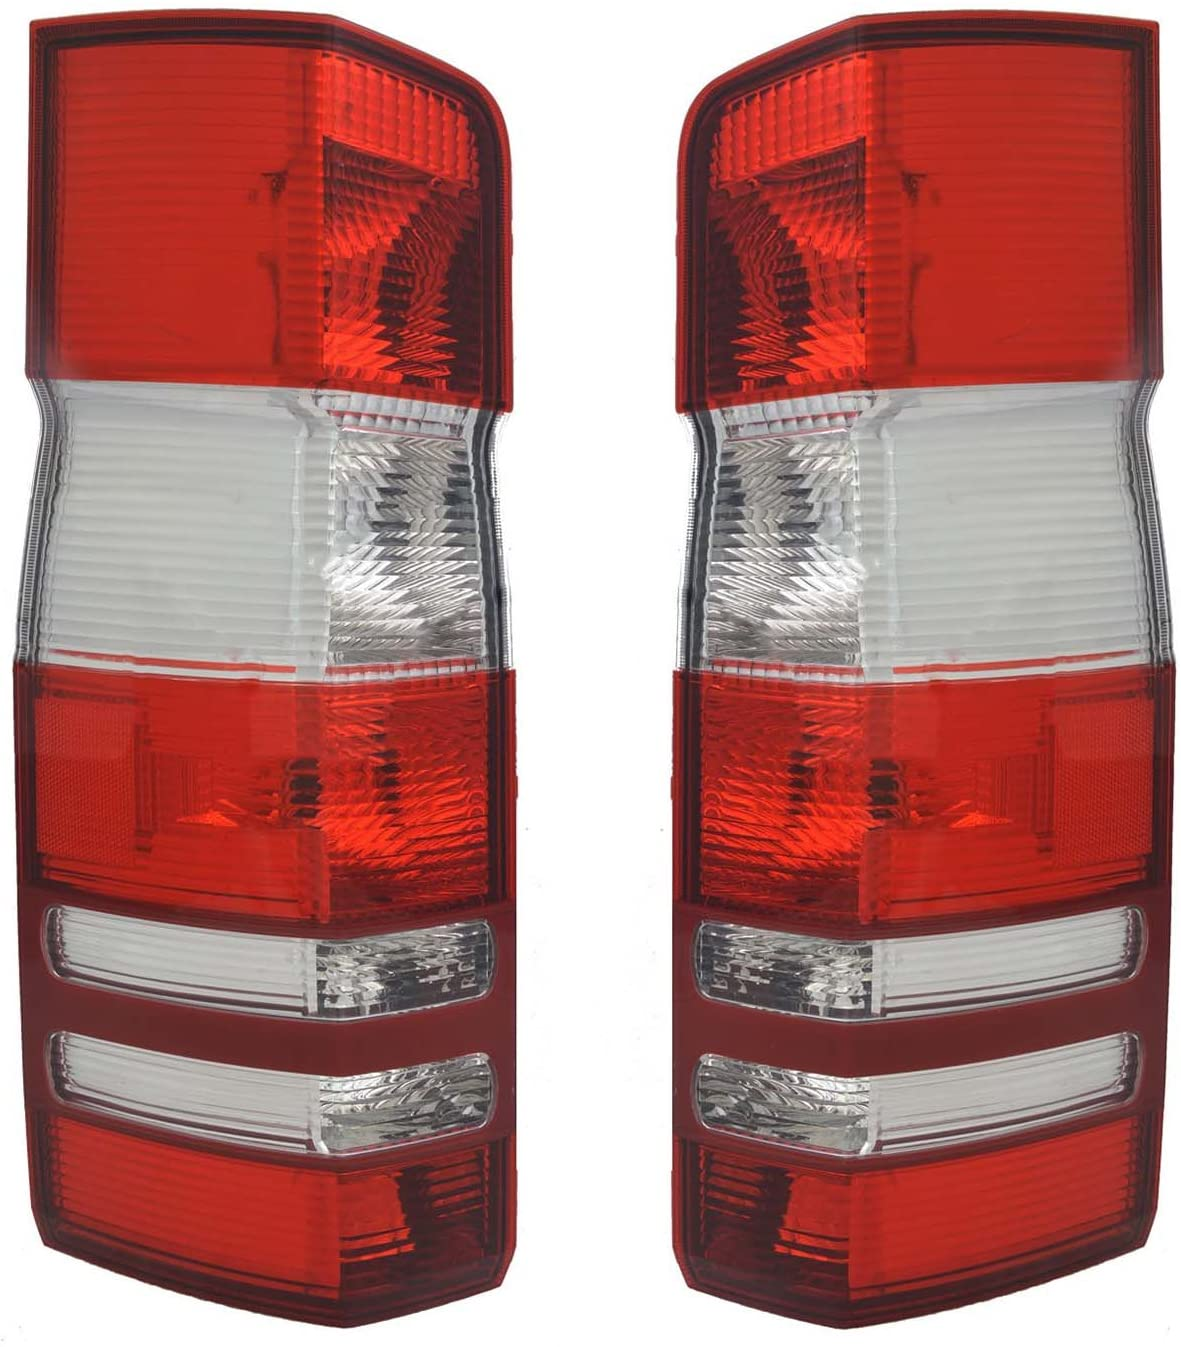 Rareelectrical NEW TAIL LIGHT PAIR COMPATIBLE WITH MERCEDES BENZ SPRINTER 2500 2010-14 MB2801136 MB2800136 906 820 27 64 9068202764 906-820-27-64